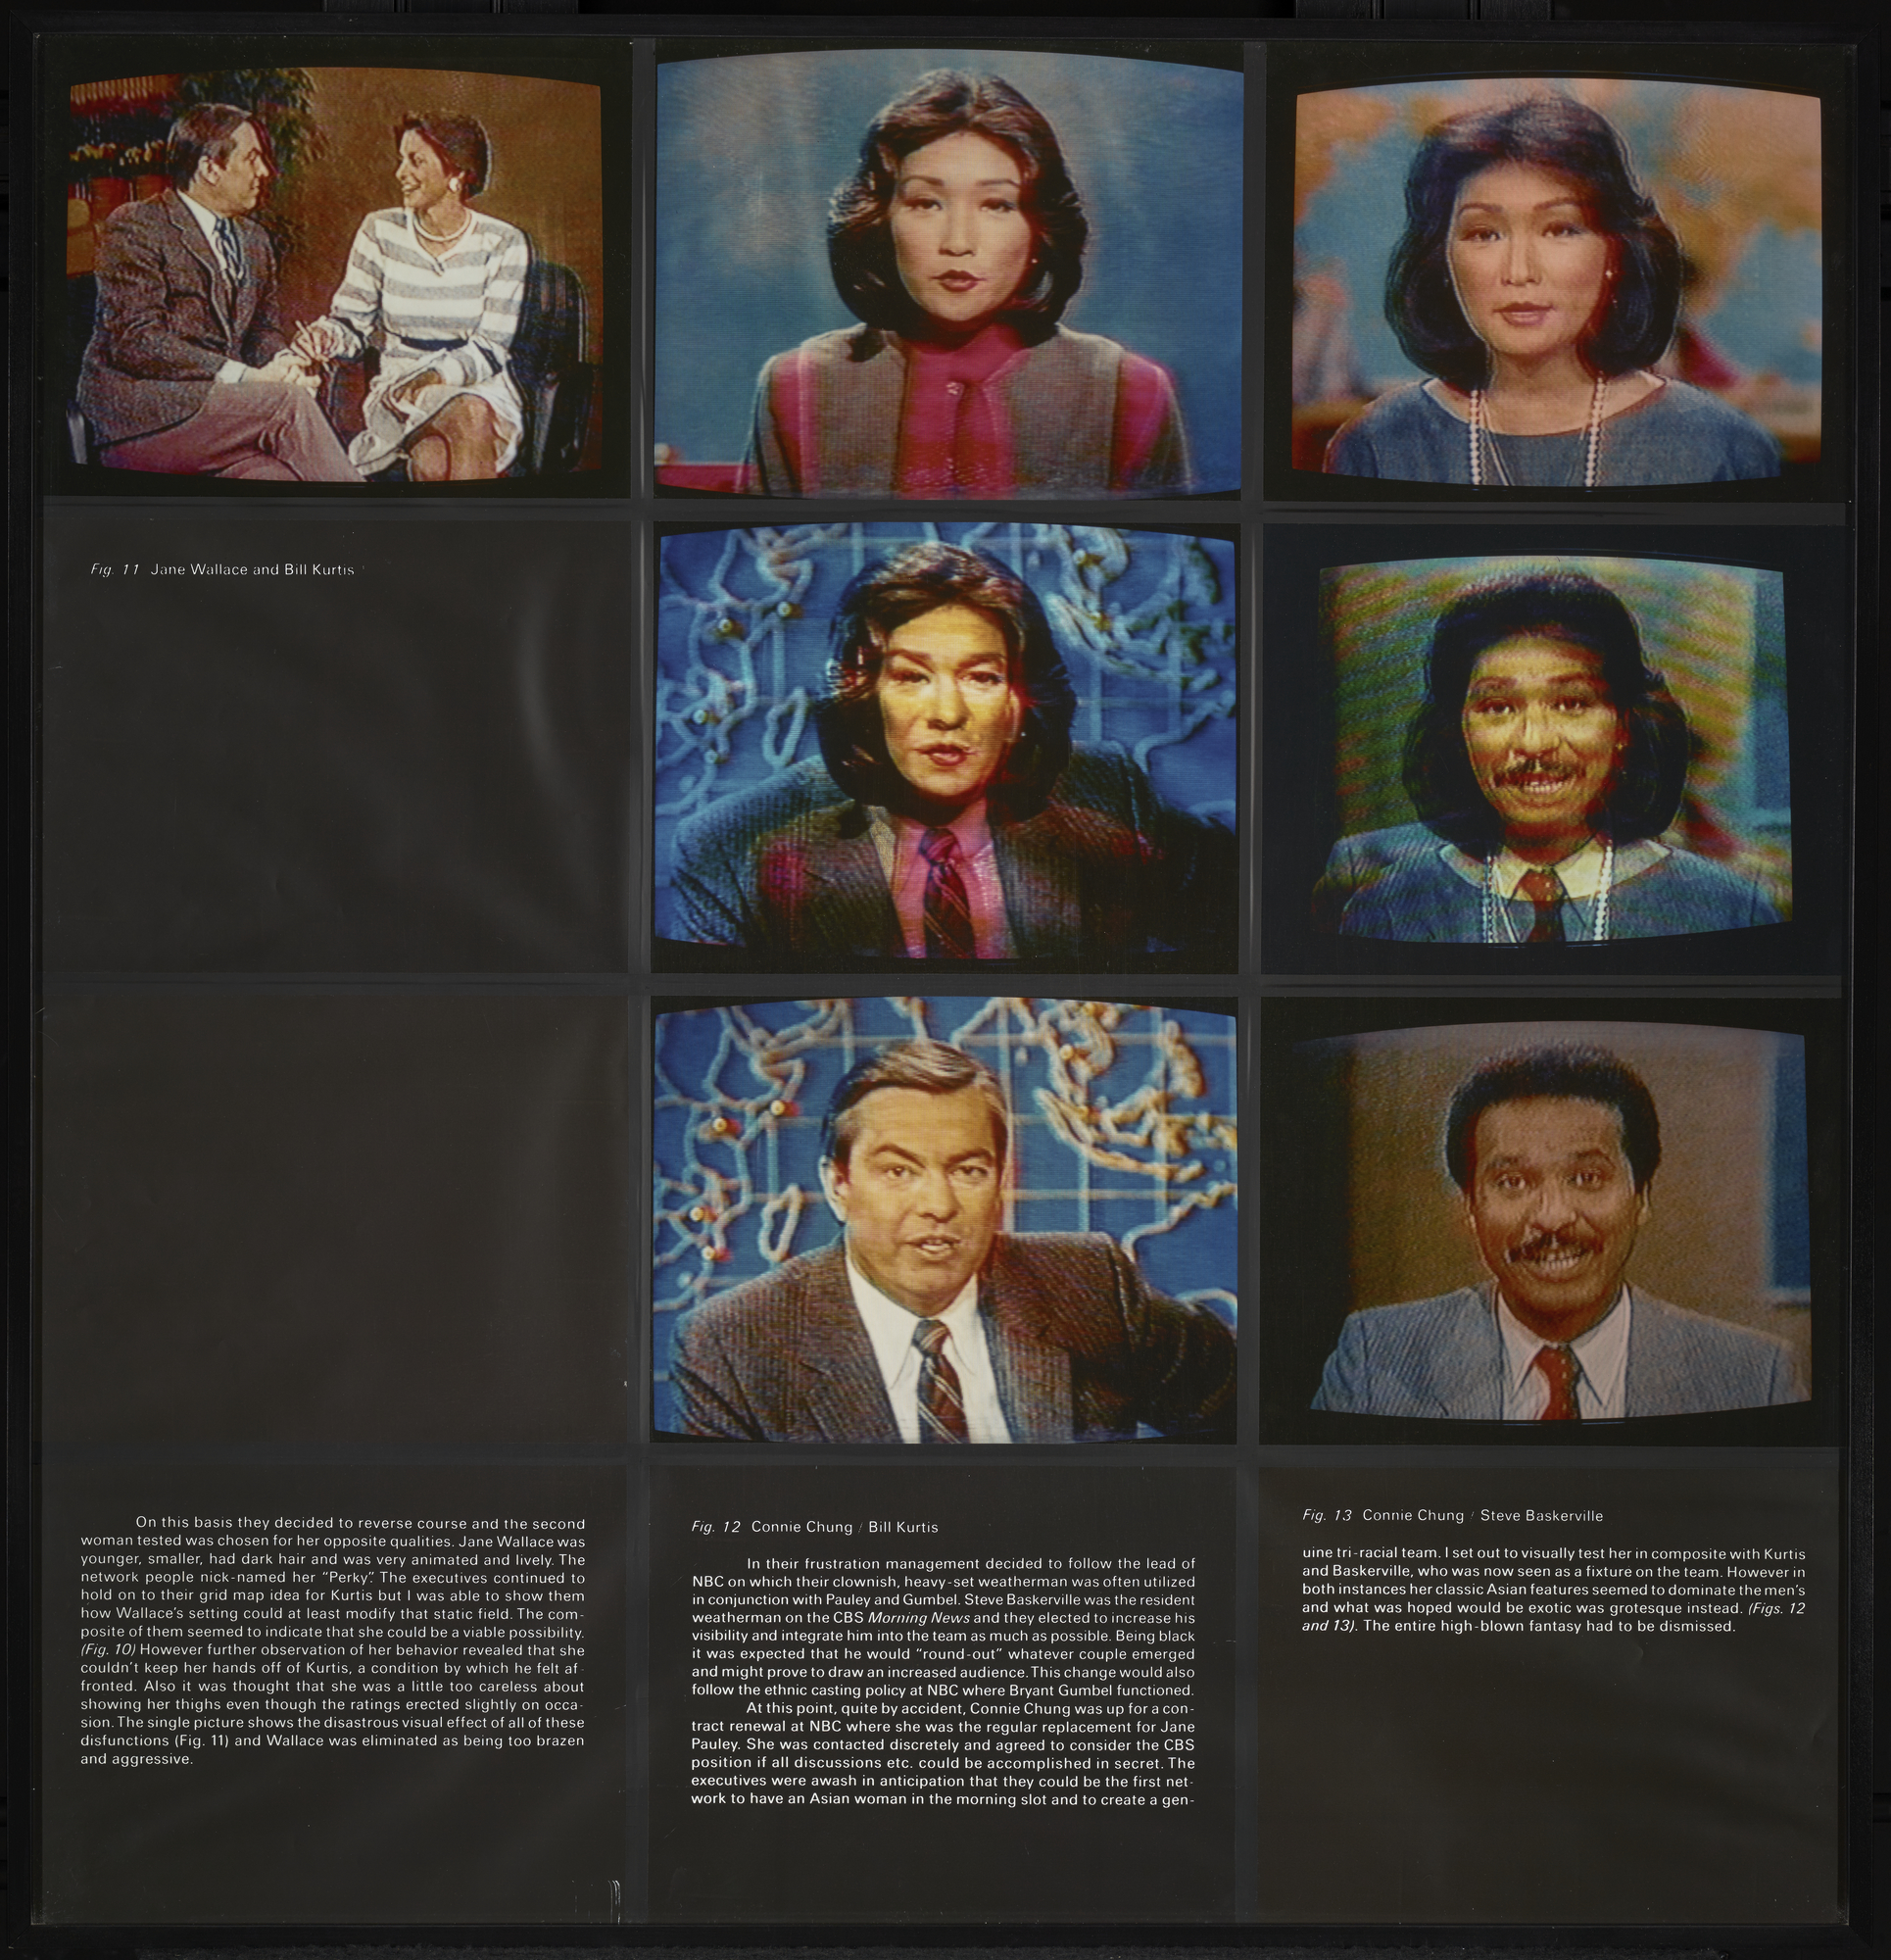 A Case Study in Finding an Appropriate TV Newswoman (A CBS Docudrama in Words and Pcitures), 1984